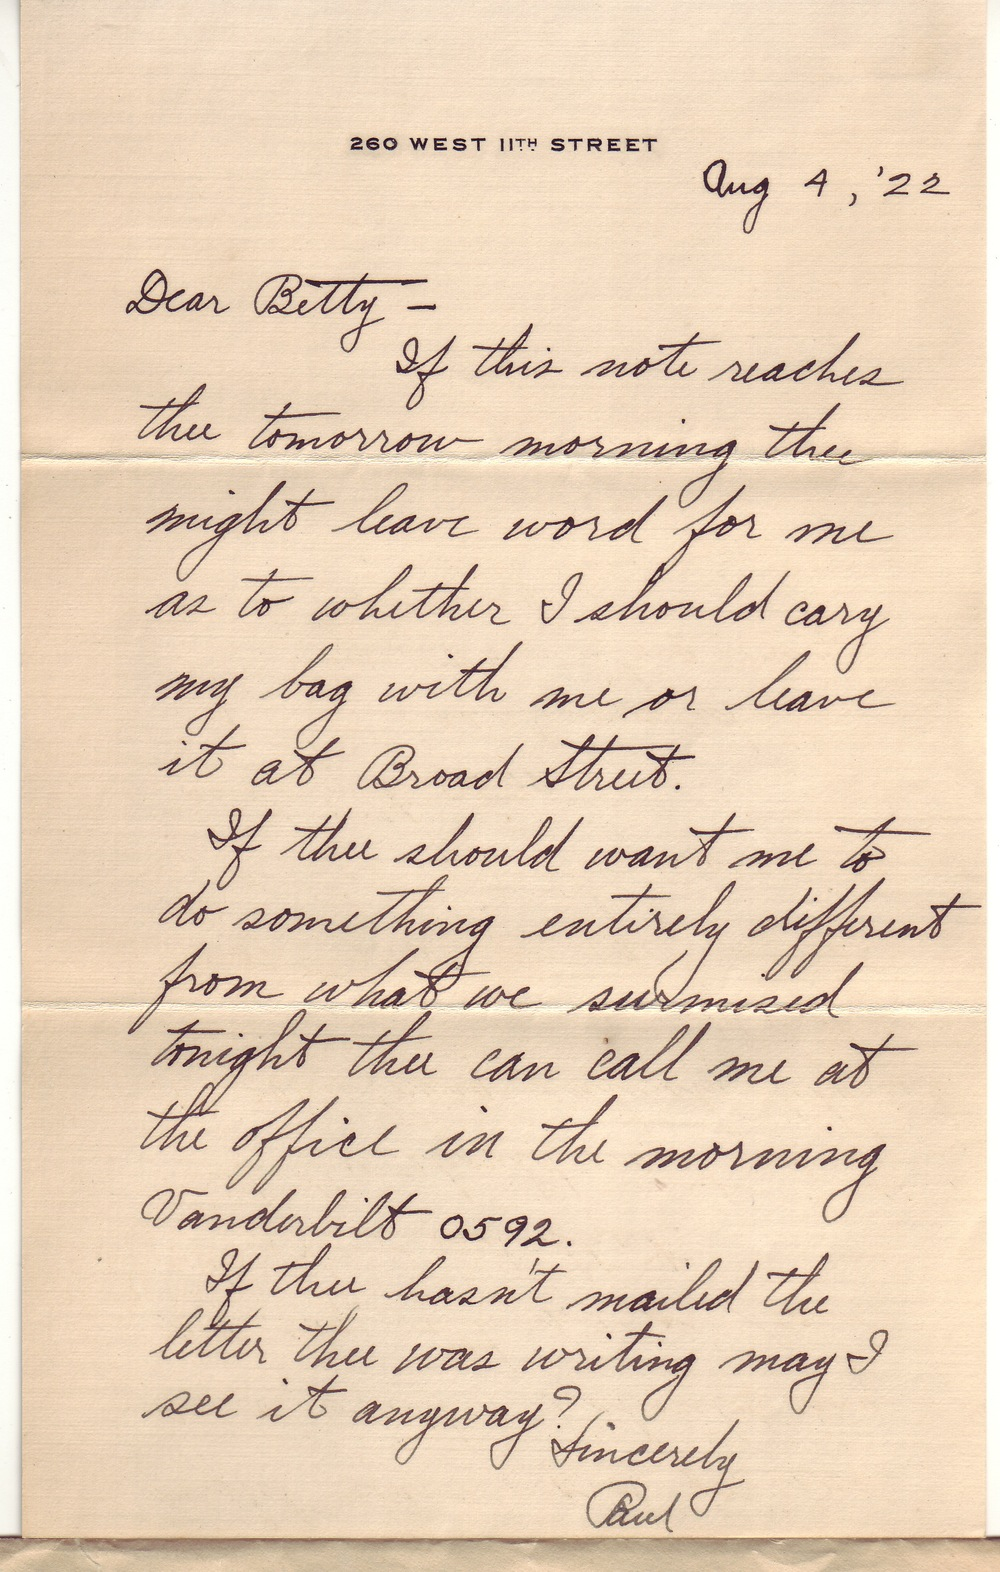 Paul's first letter to Betty